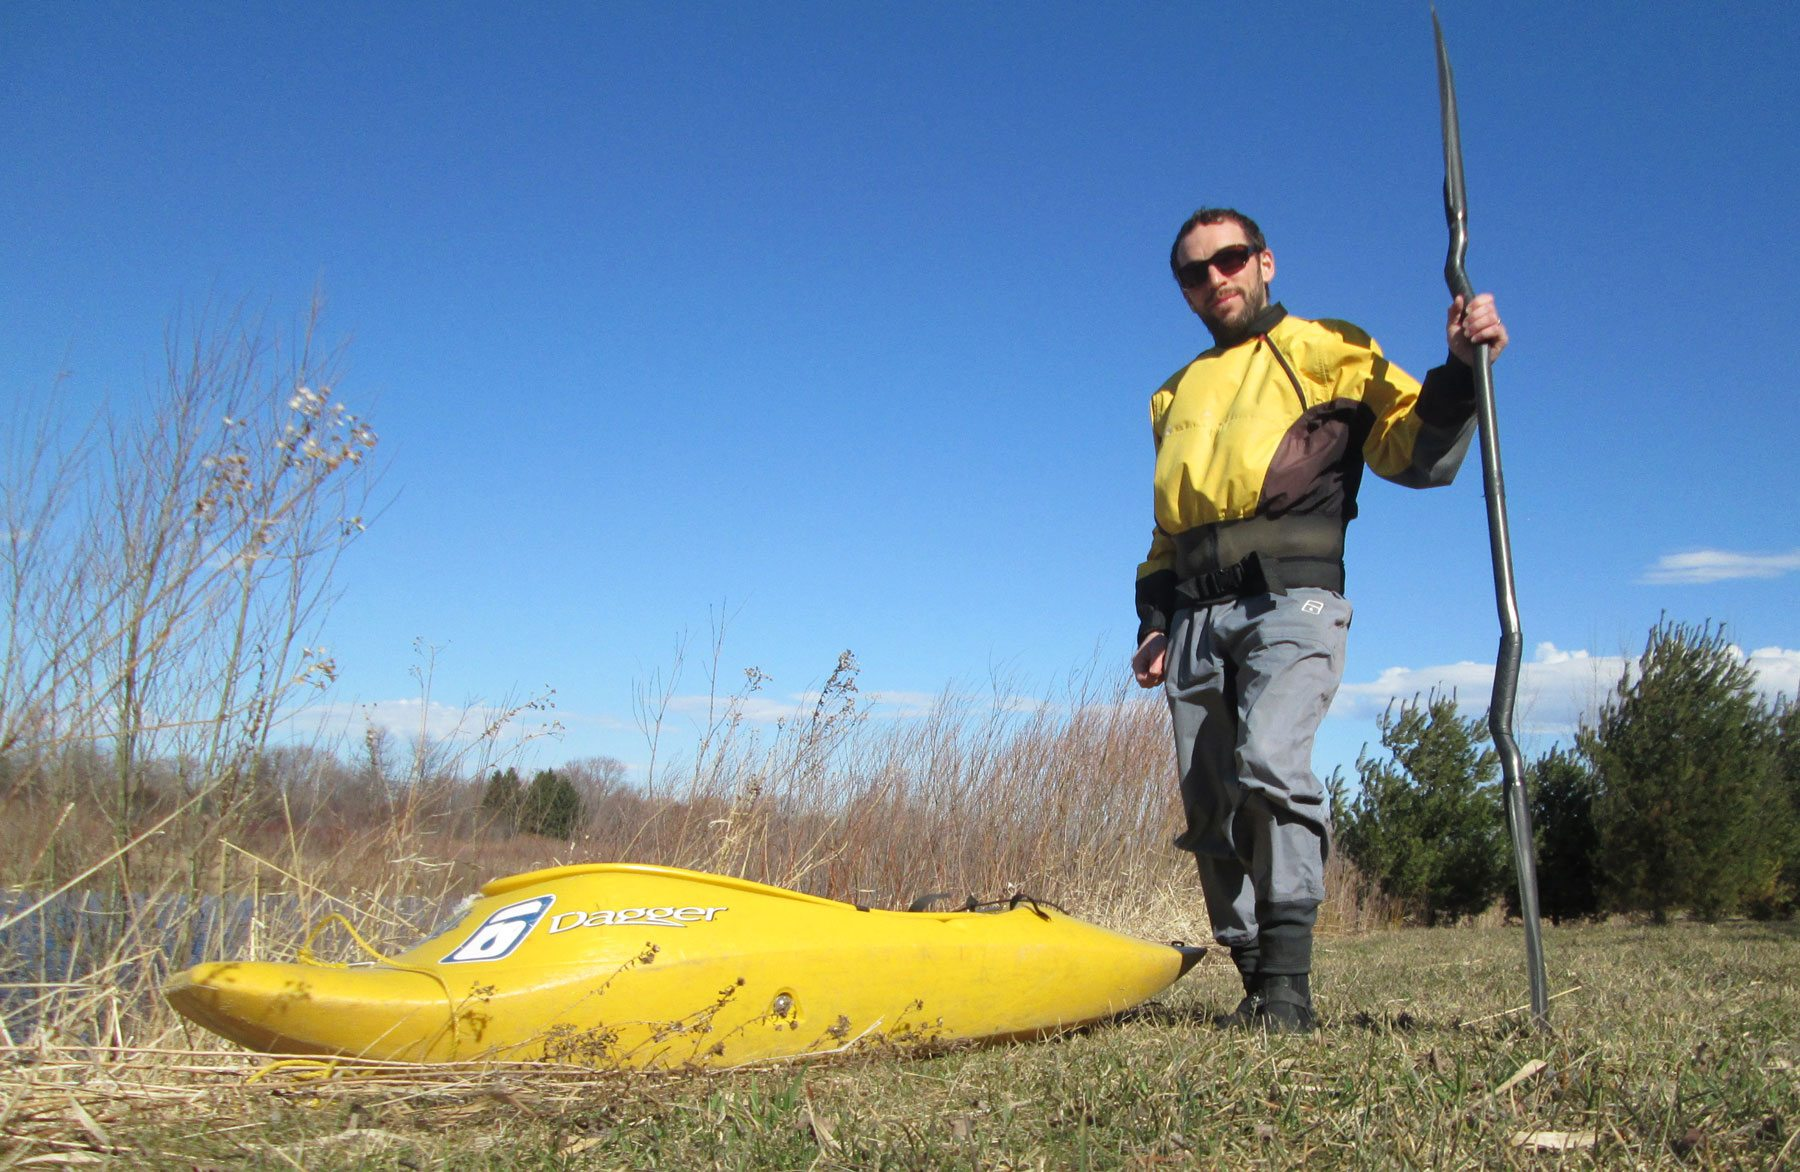 The fearless Dan Rubinstein and his kayak. Photo: Dan Rubinstein